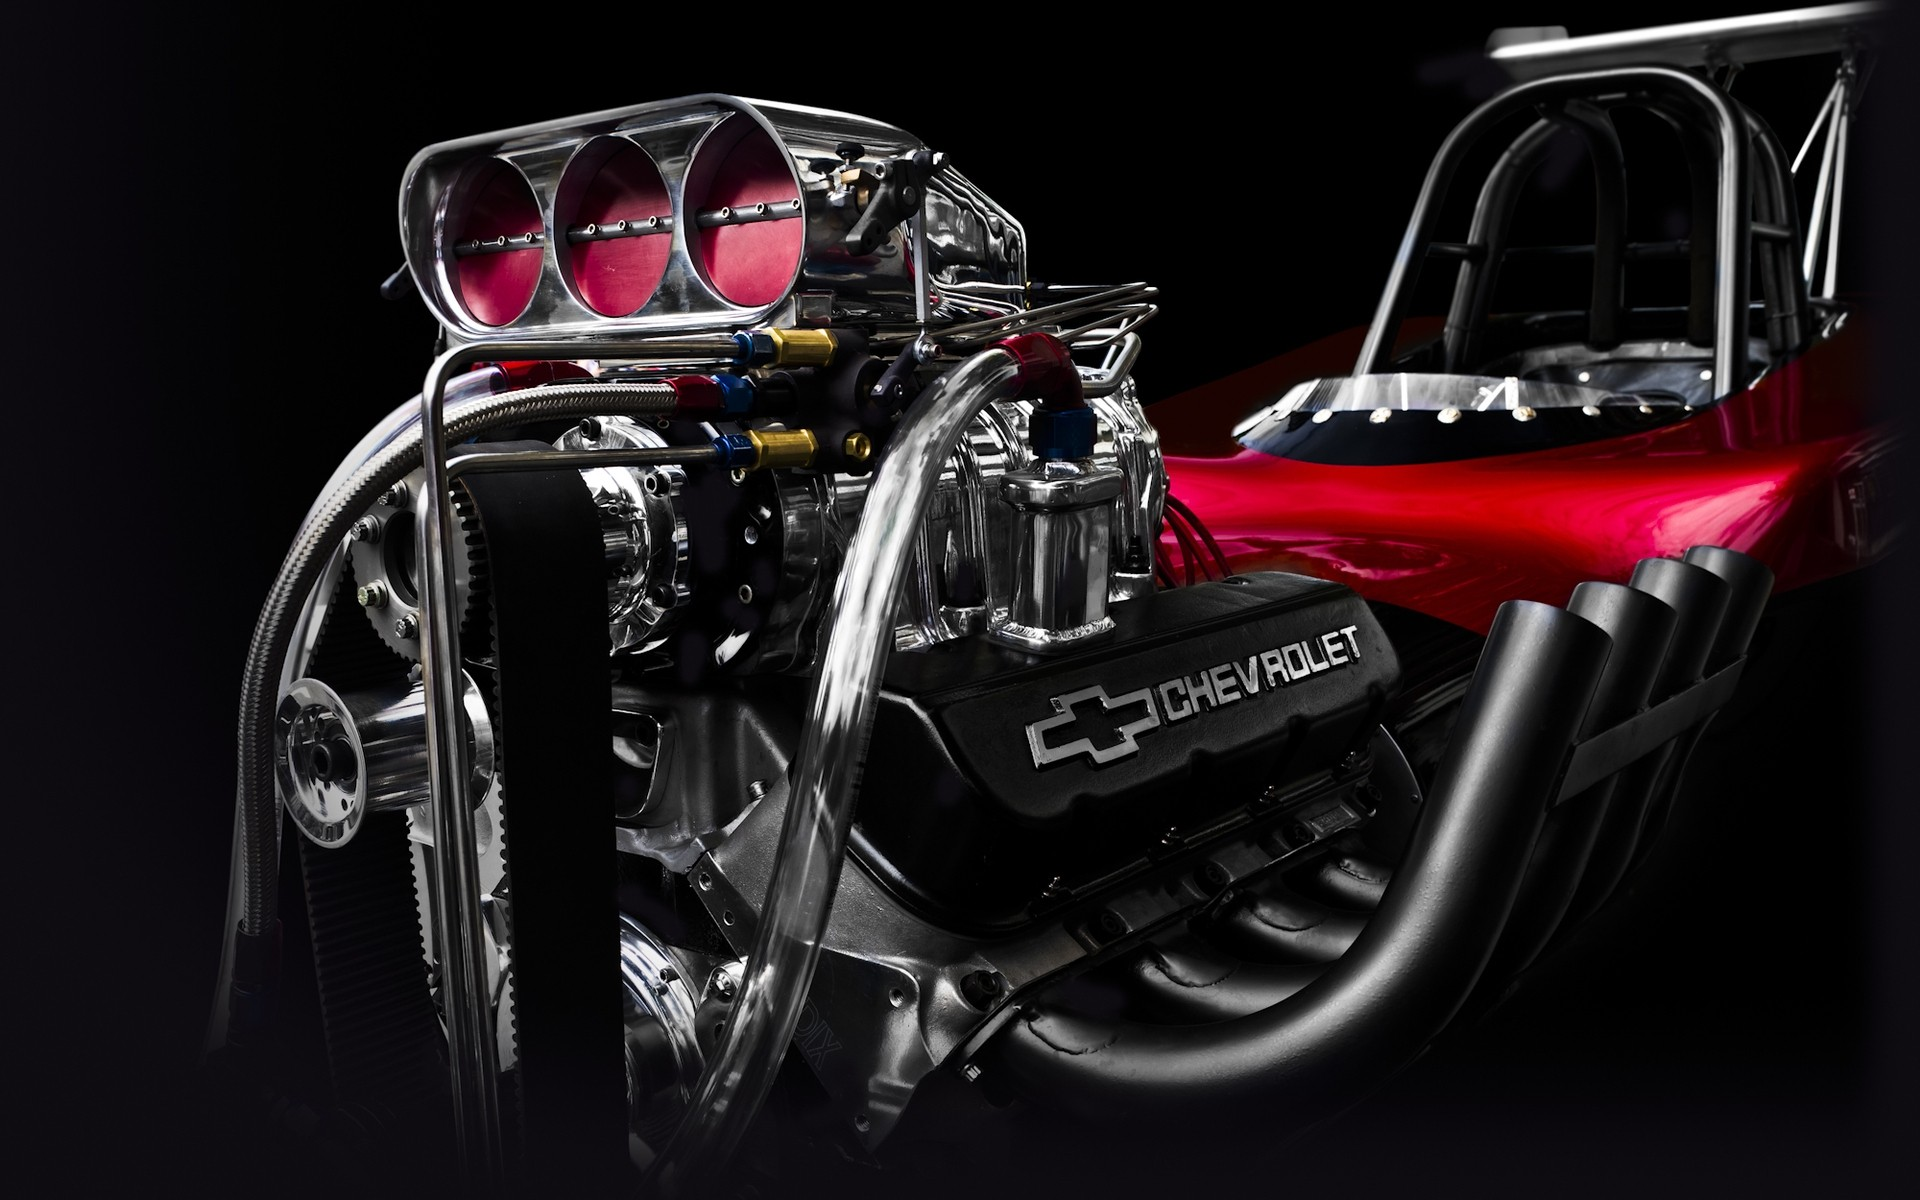 Chevrolet Engine - Phone wallpapers